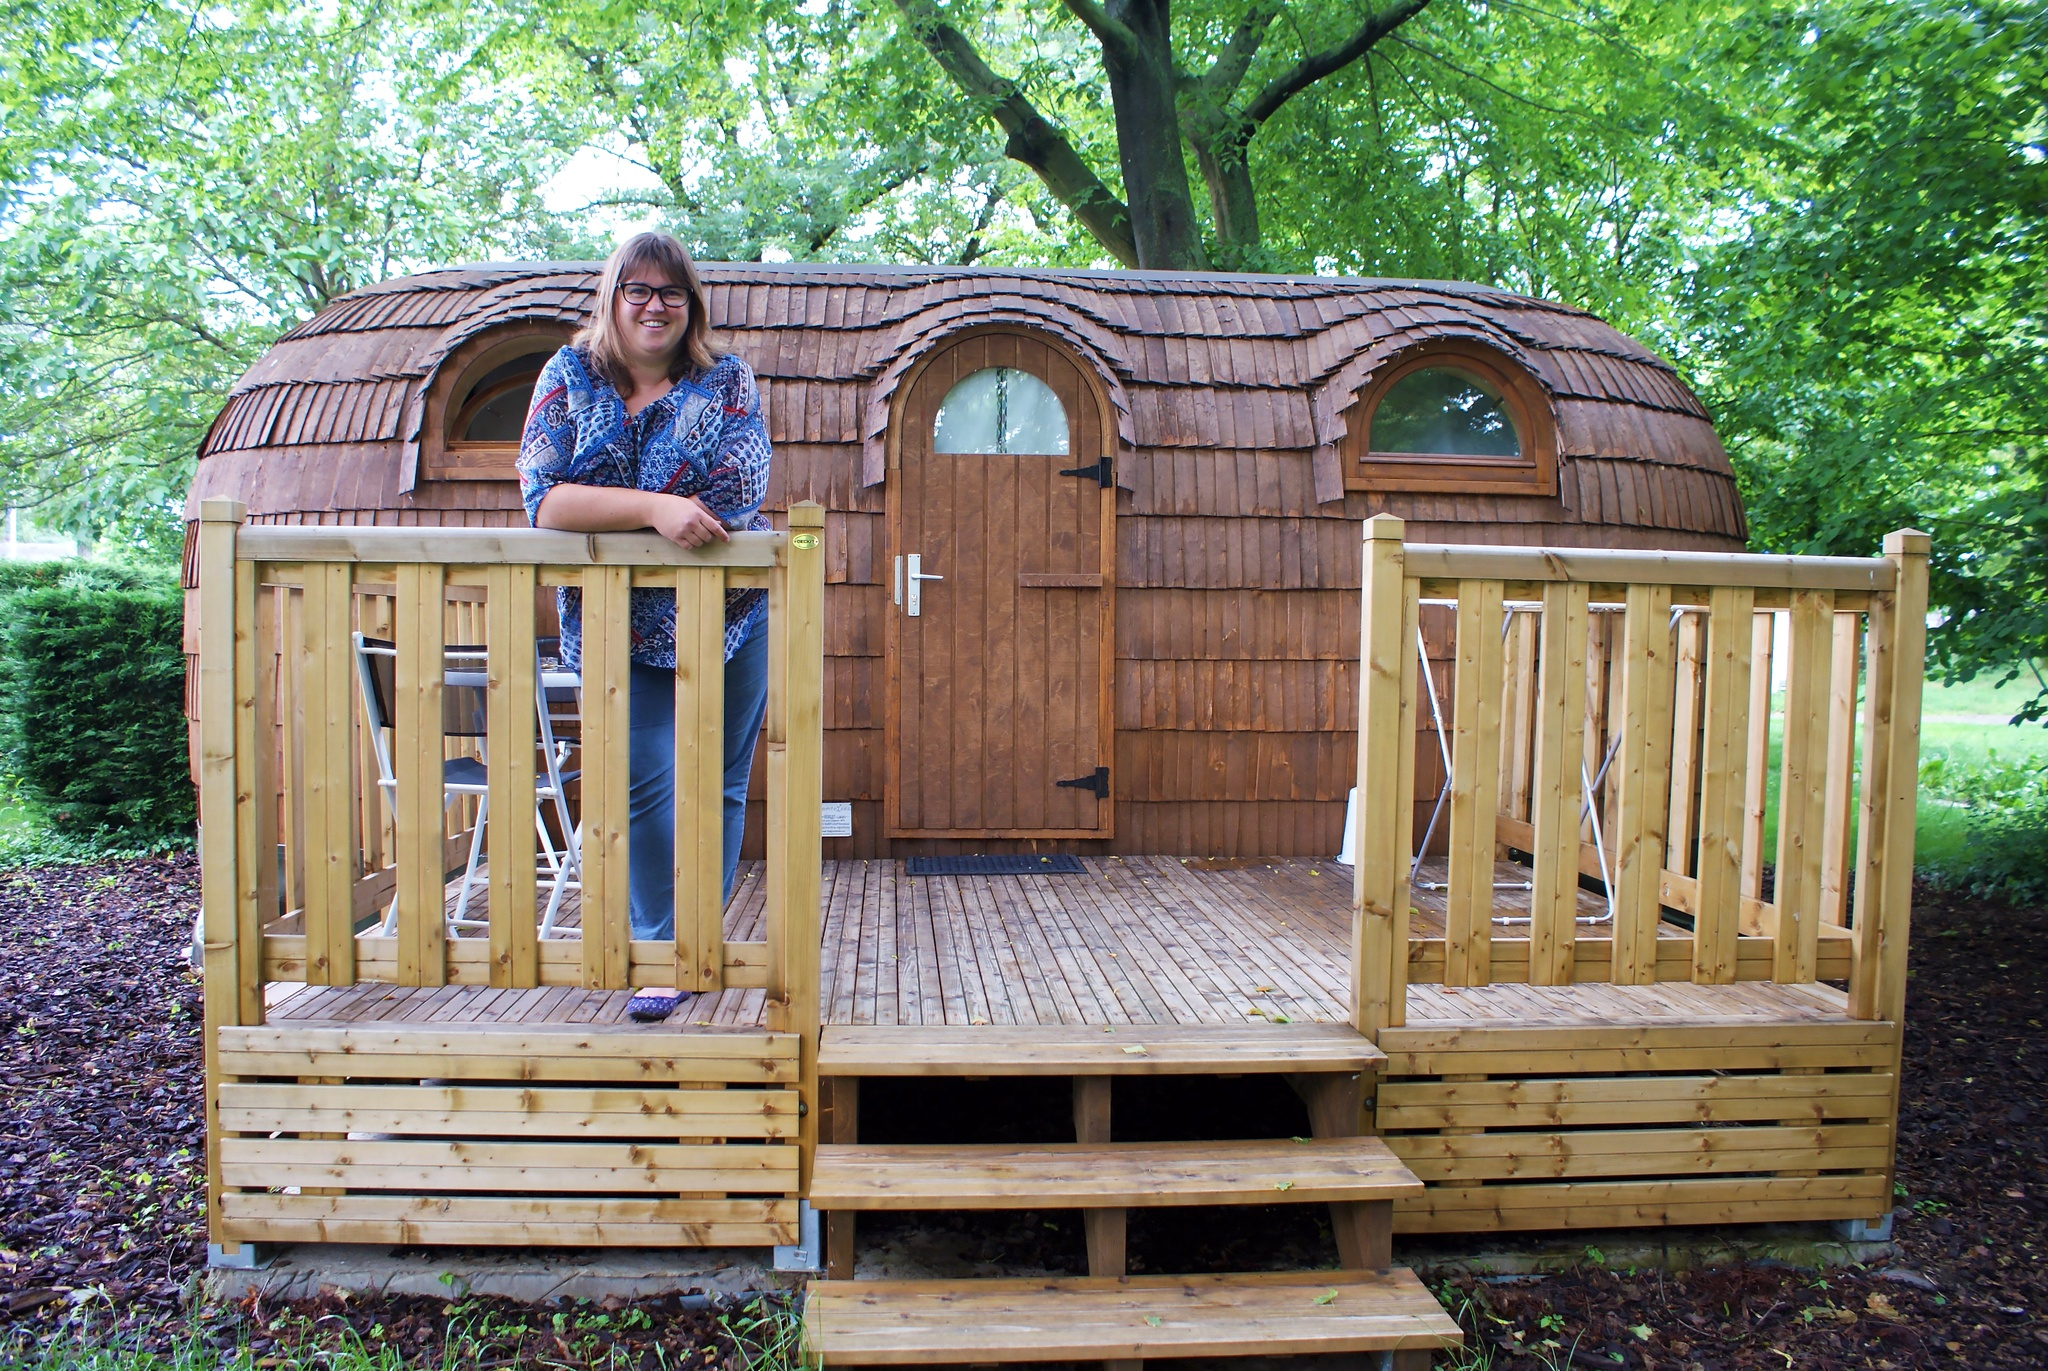 Igloo camping de l'Ill, Mulhouse